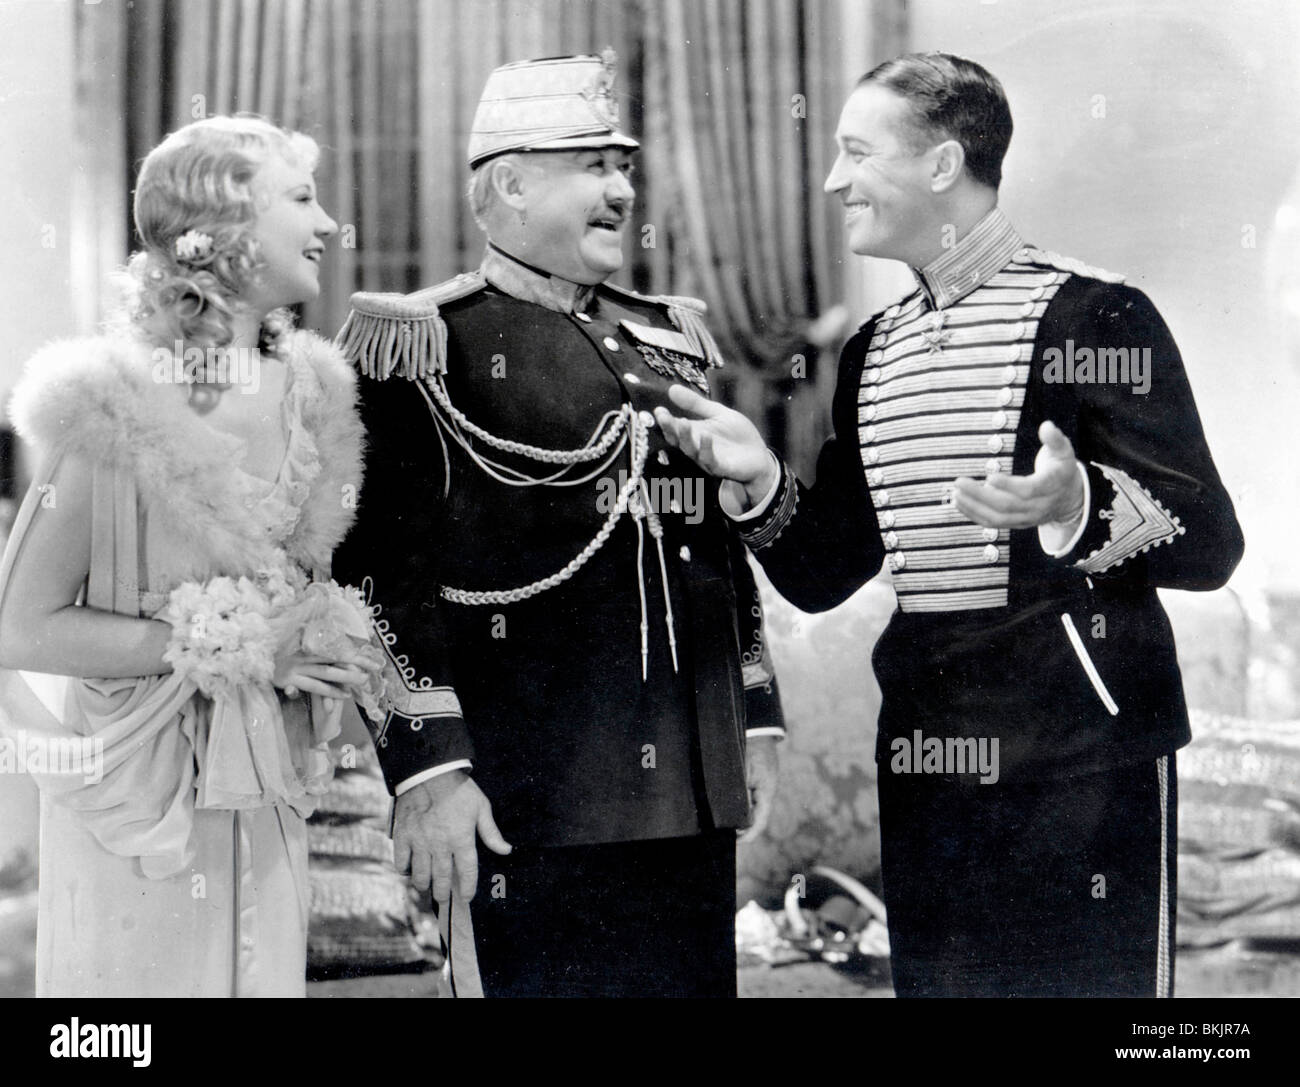 THE MERRY WIDOW (1934) UNA MERKEL, GEORGE BARBIER, MAURICE CHEVALIER MRRW 002 P - Stock Image